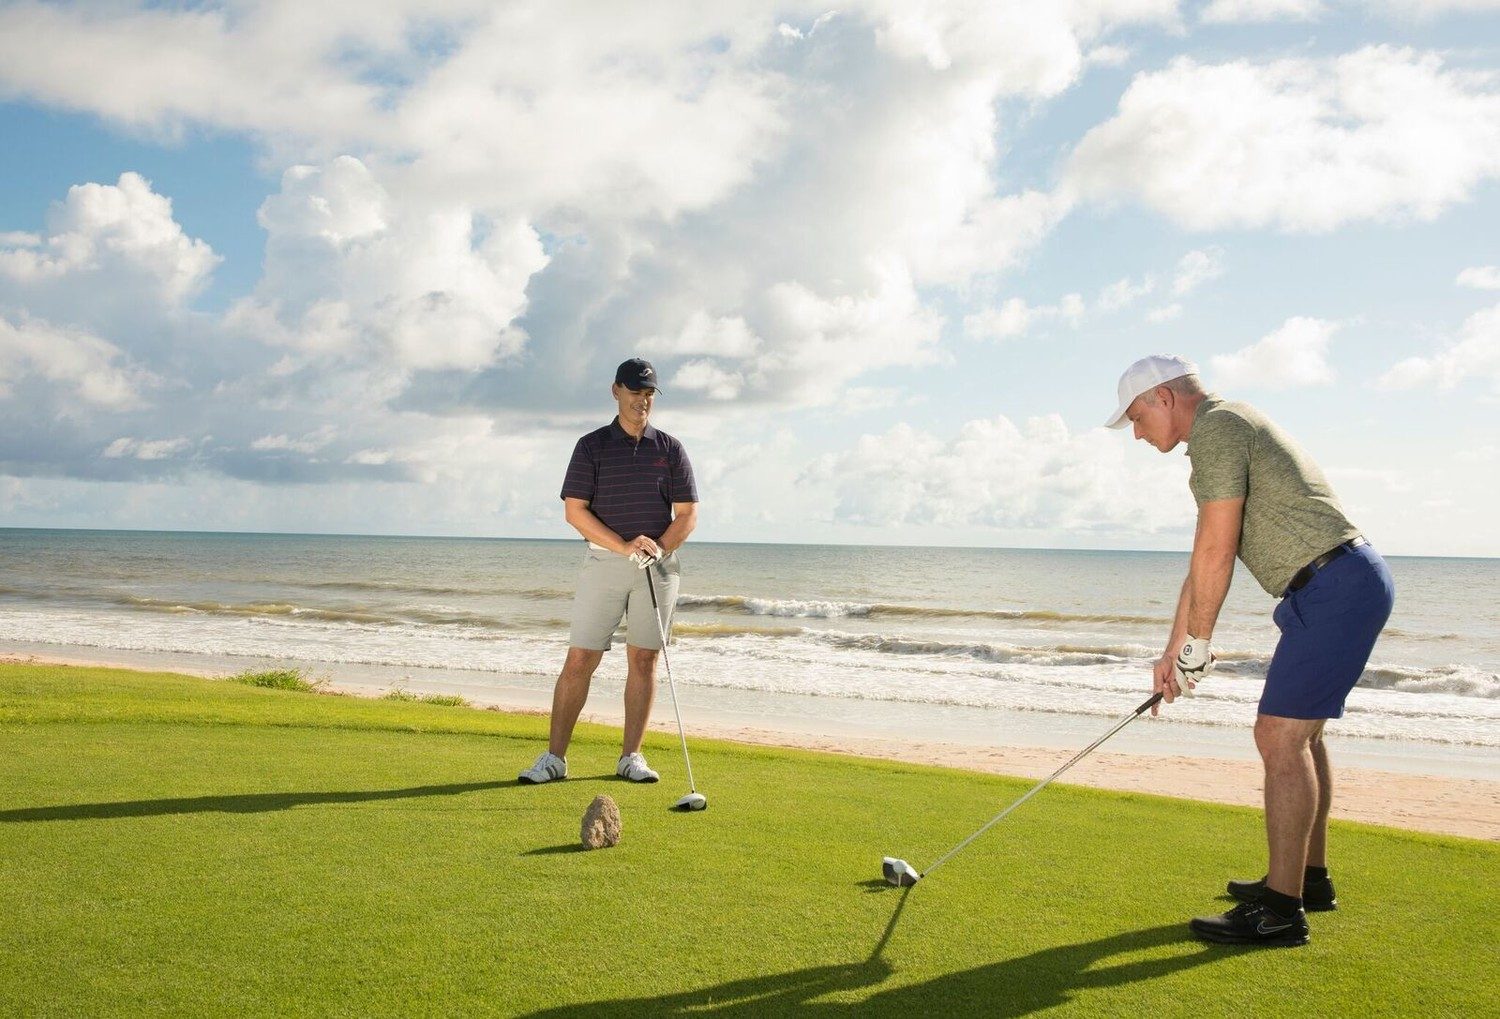 The famed Ocean Course at Hammock Beach Resort, a Jack Nicklaus Signature Design, is known for its proximity to the Atlantic Ocean.